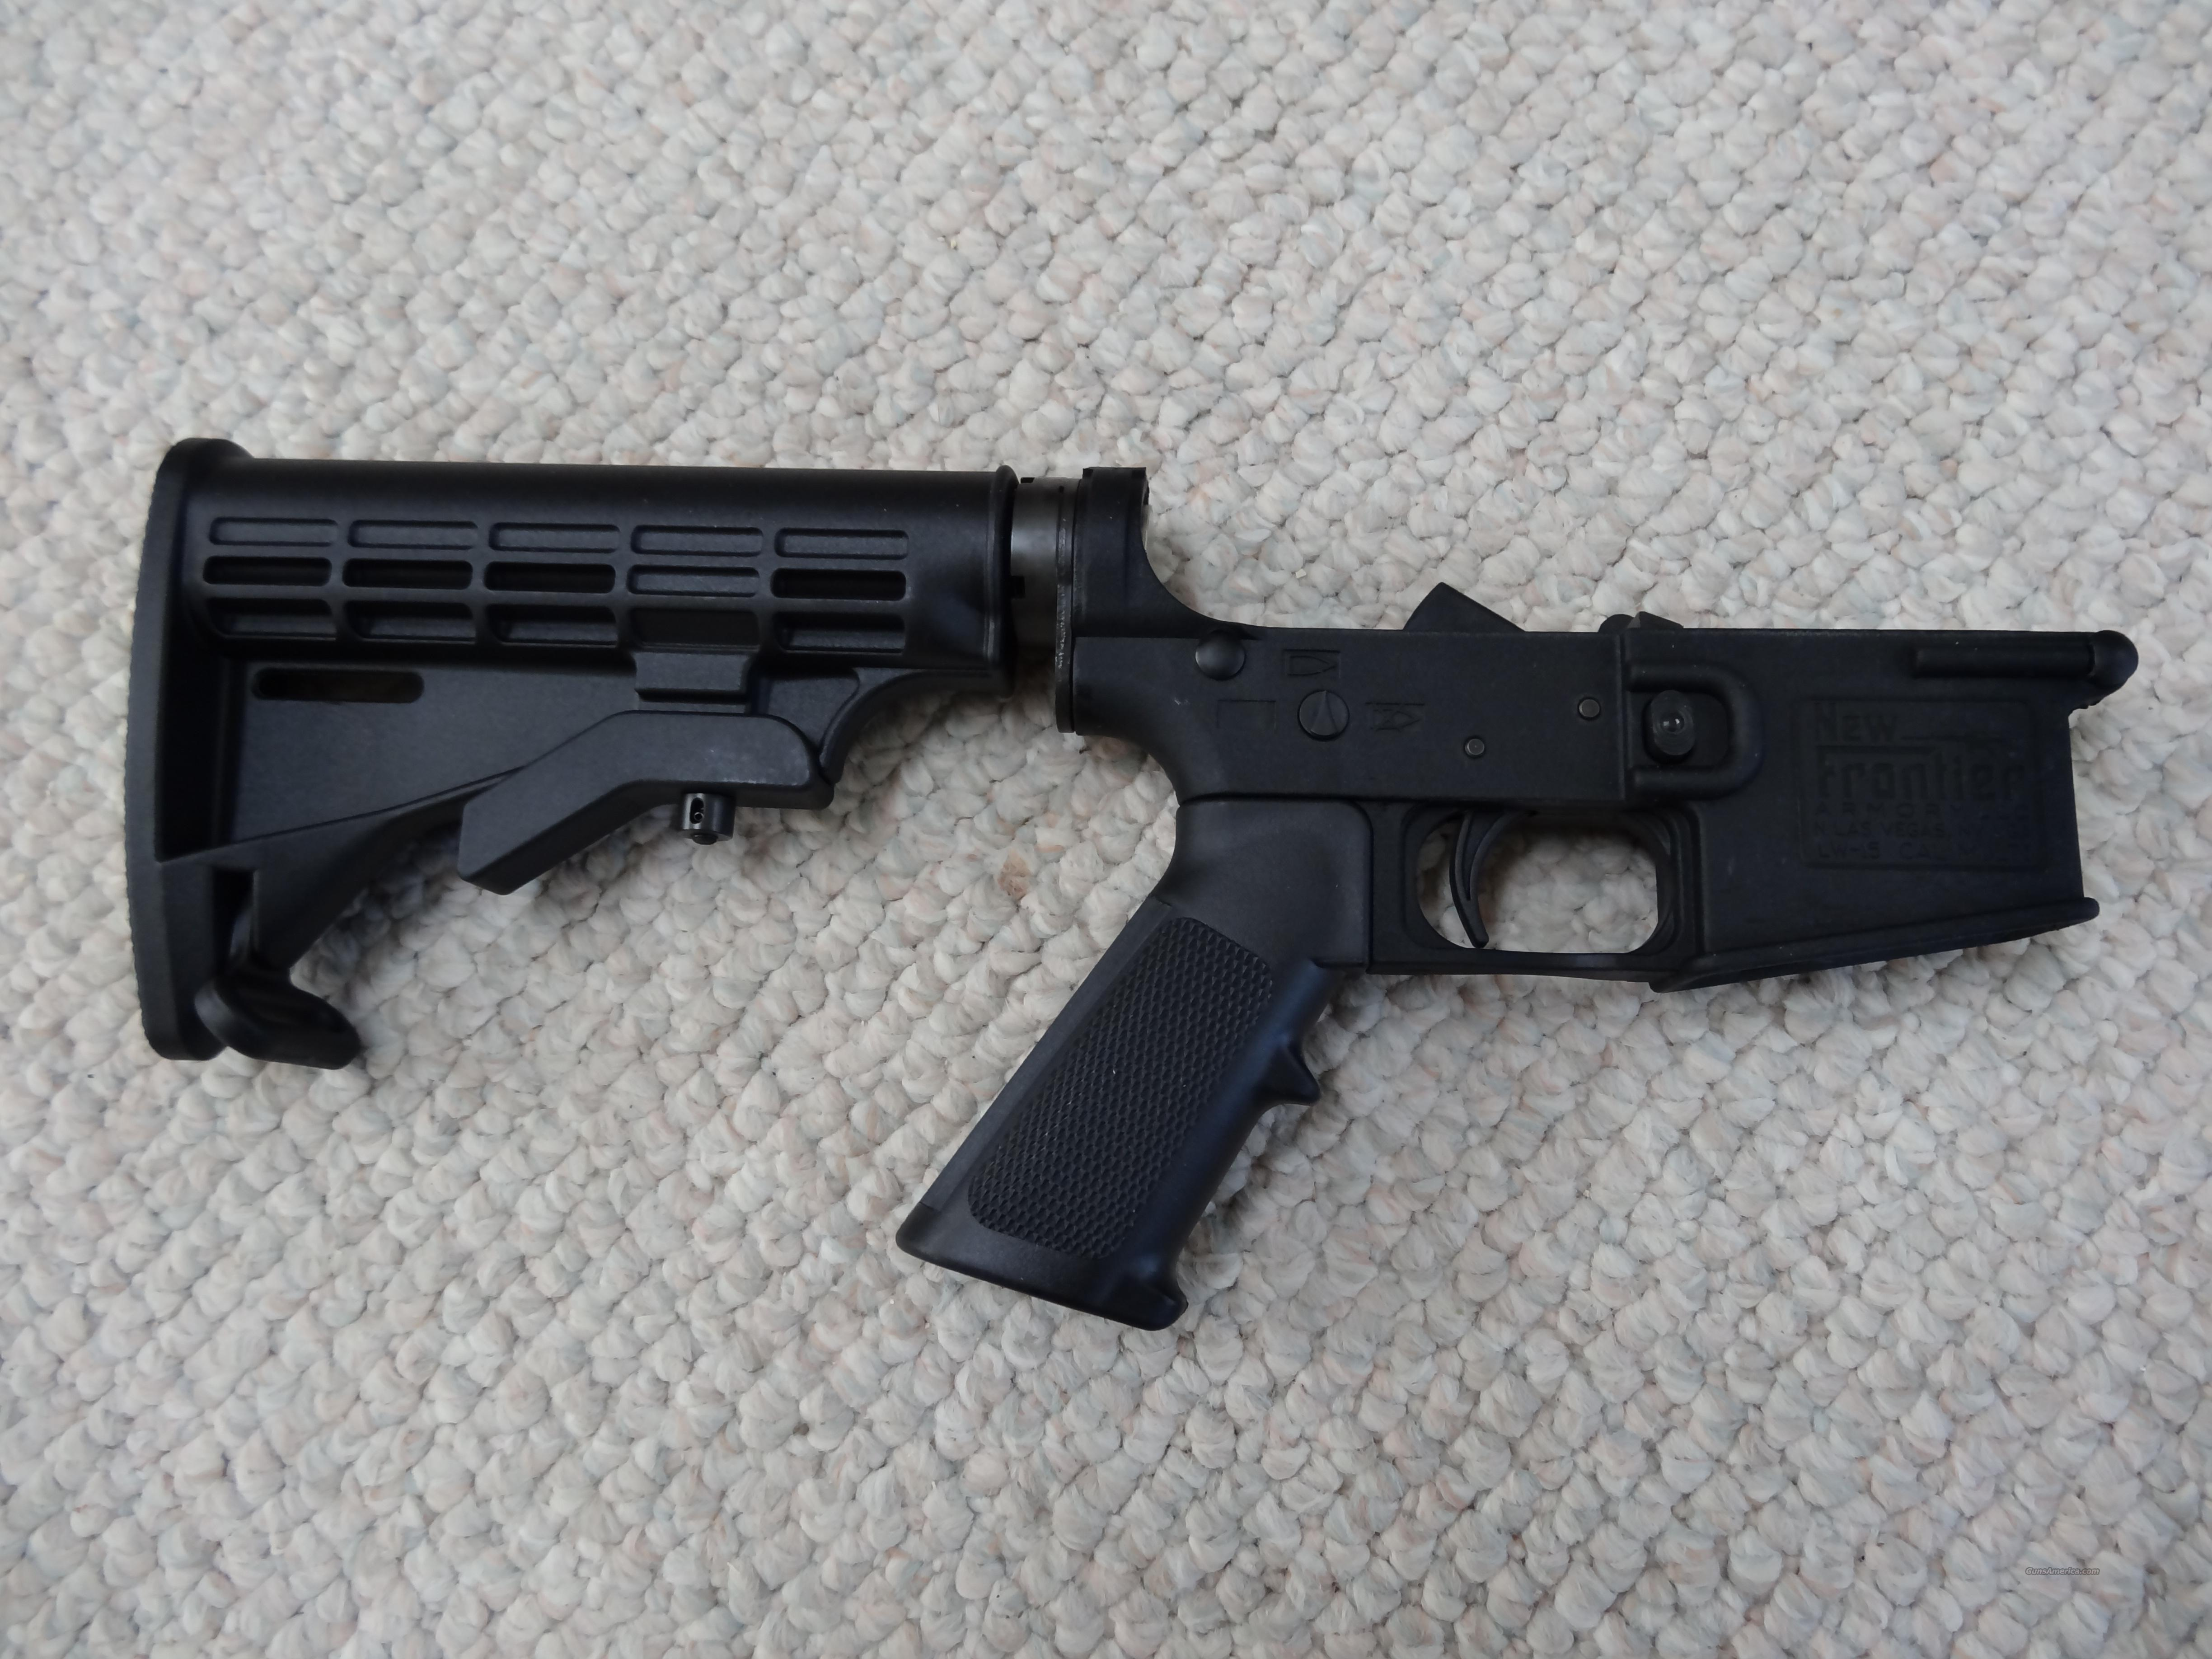 New Frontier Armory LW-15 AR Complete Lower Receiver  Guns > Rifles > AR-15 Rifles - Small Manufacturers > Lower Only